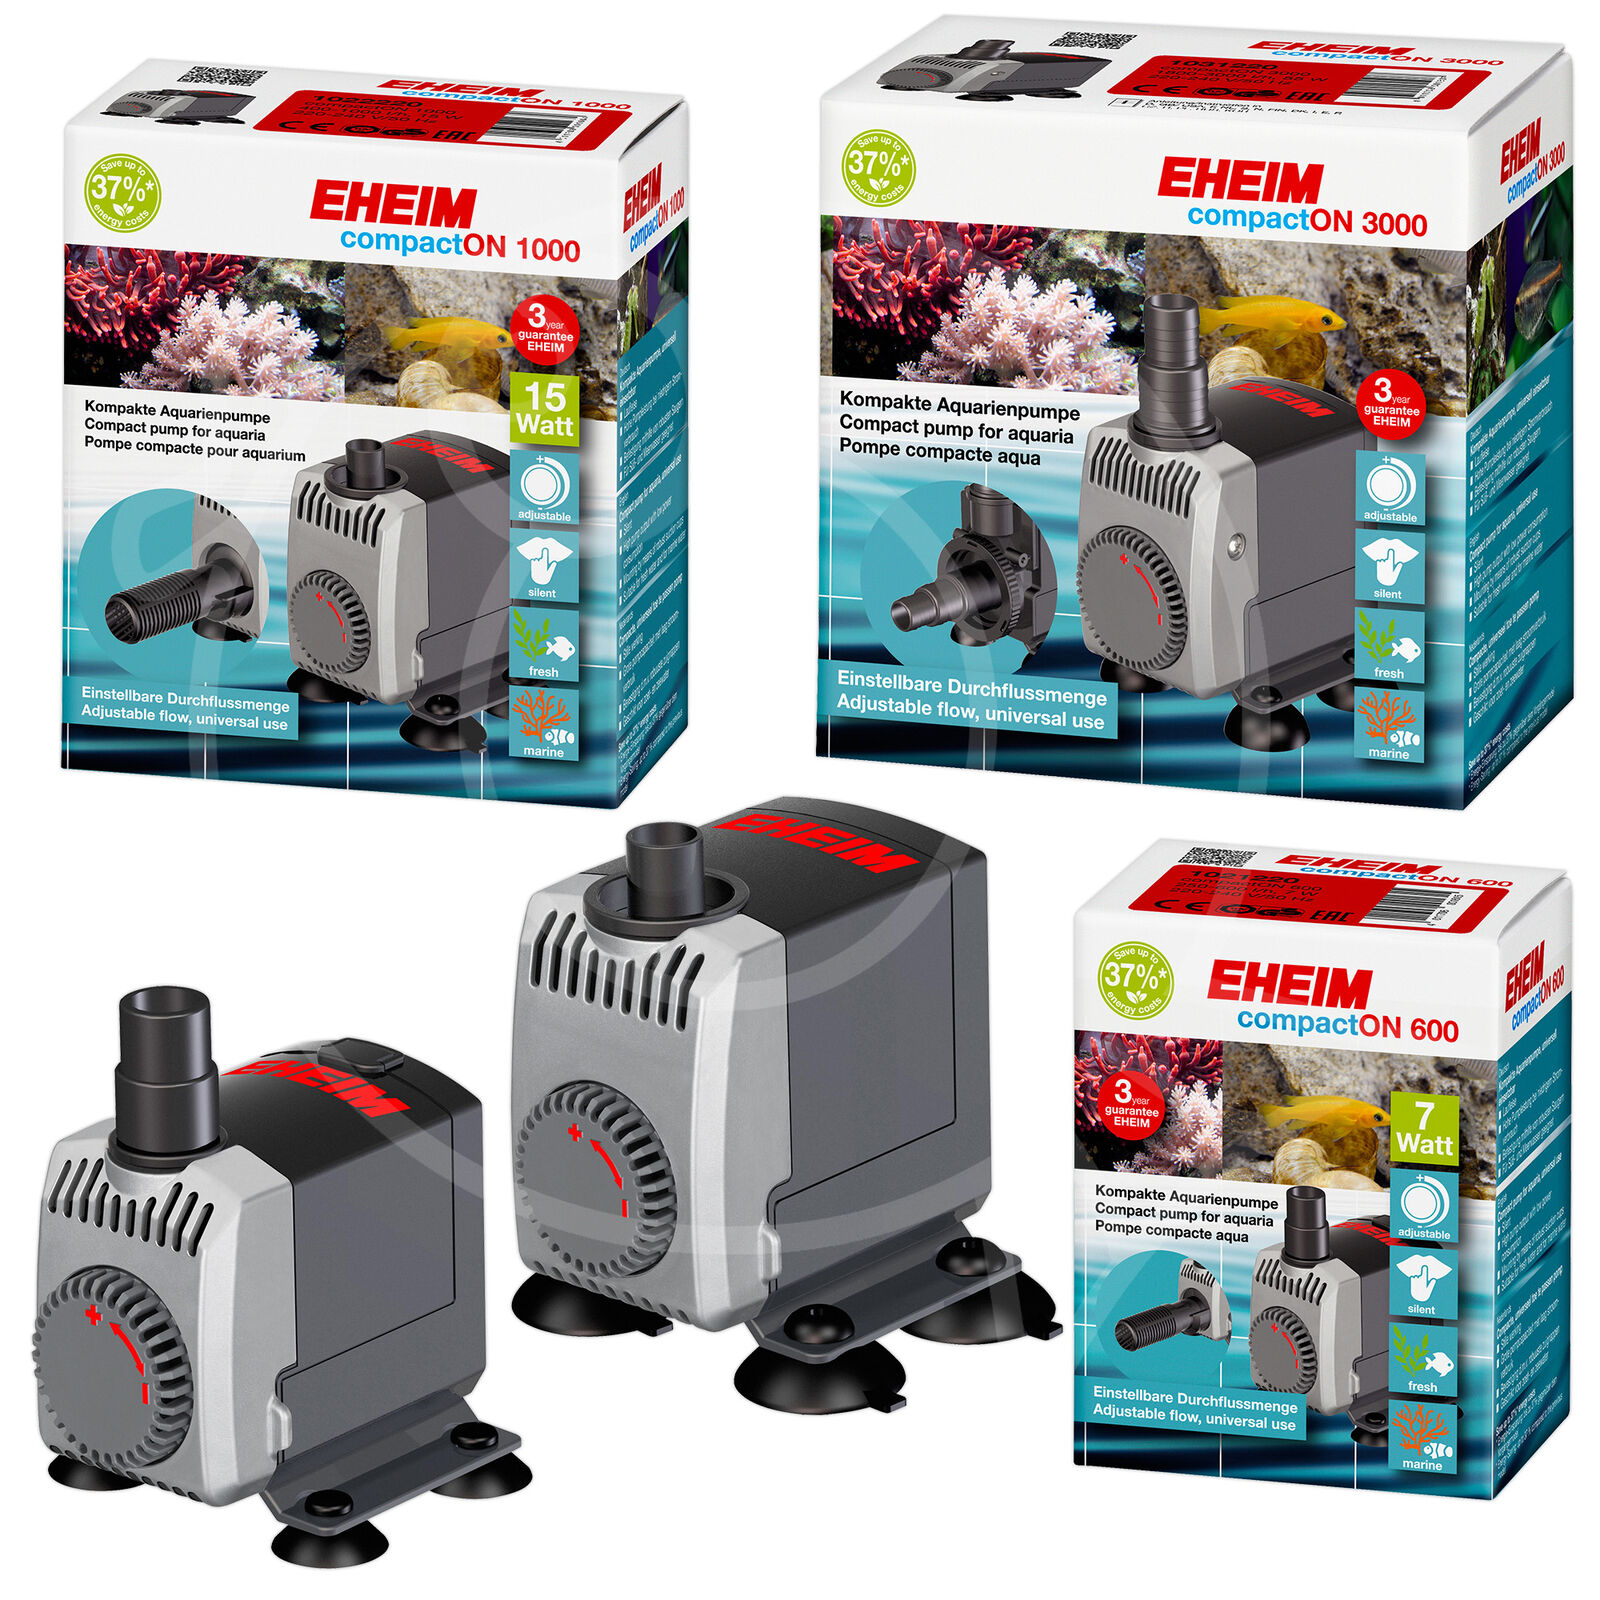 EHEIM compactON POWER HEAD FISH TANK WATER FLOW PUMP 300,600,1000,2100,3000,5000